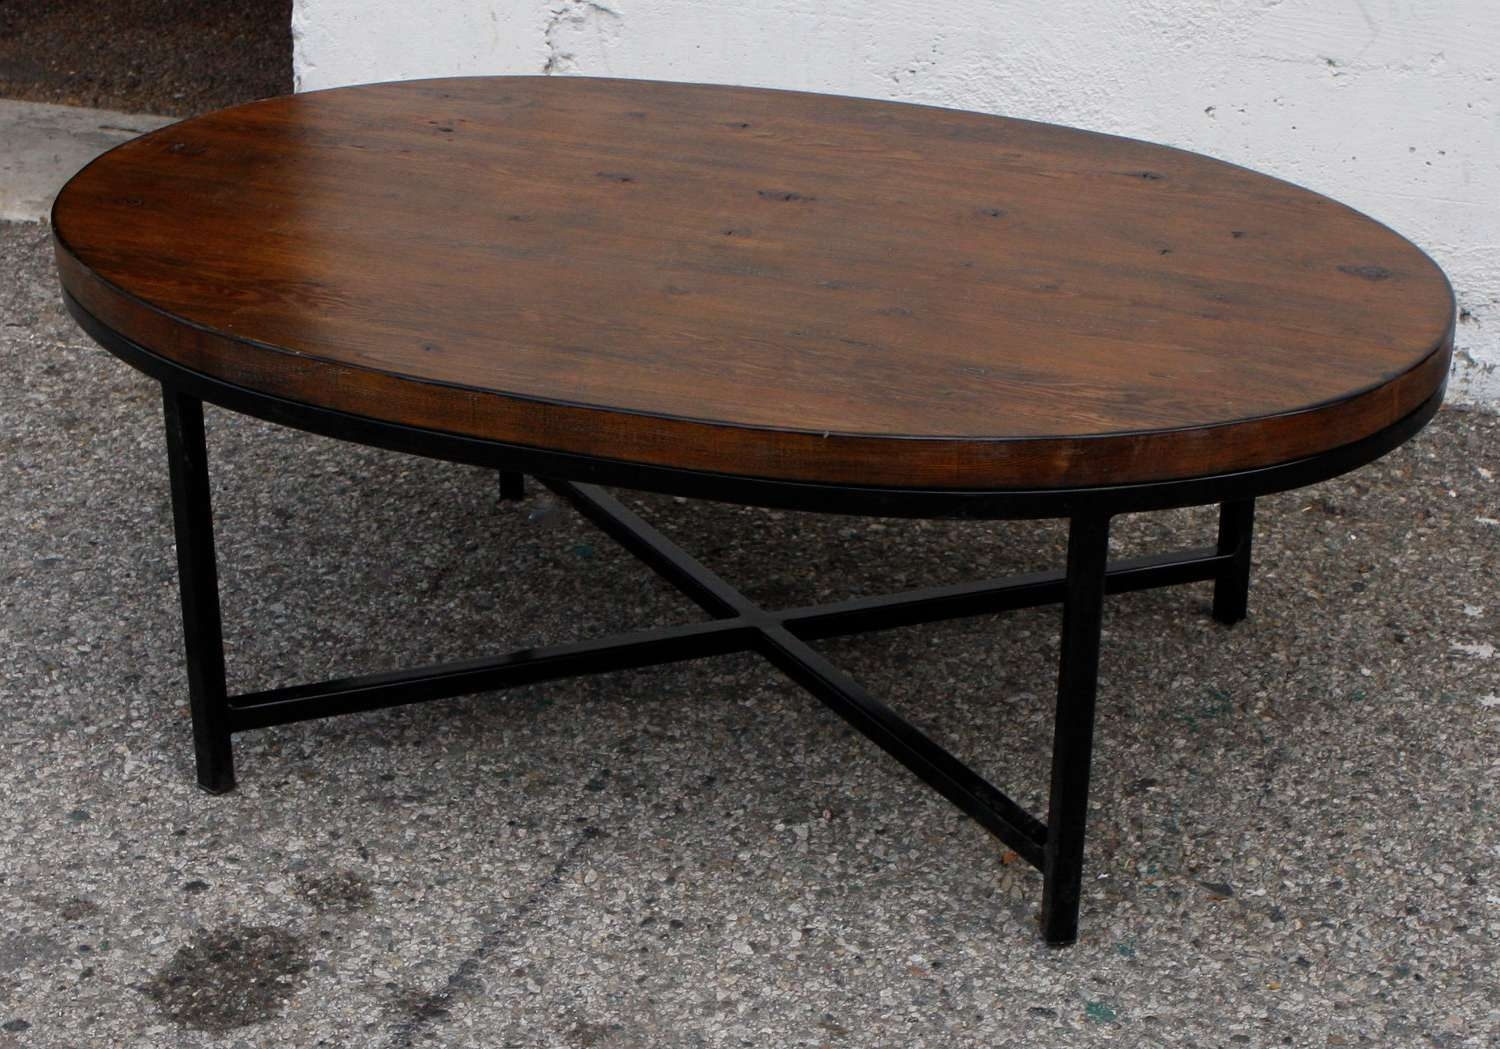 Coffee Tables : Oval Wood Coffee Table With Metal Legs Square Throughout Most Up To Date Oval Wood Coffee Tables (View 7 of 20)